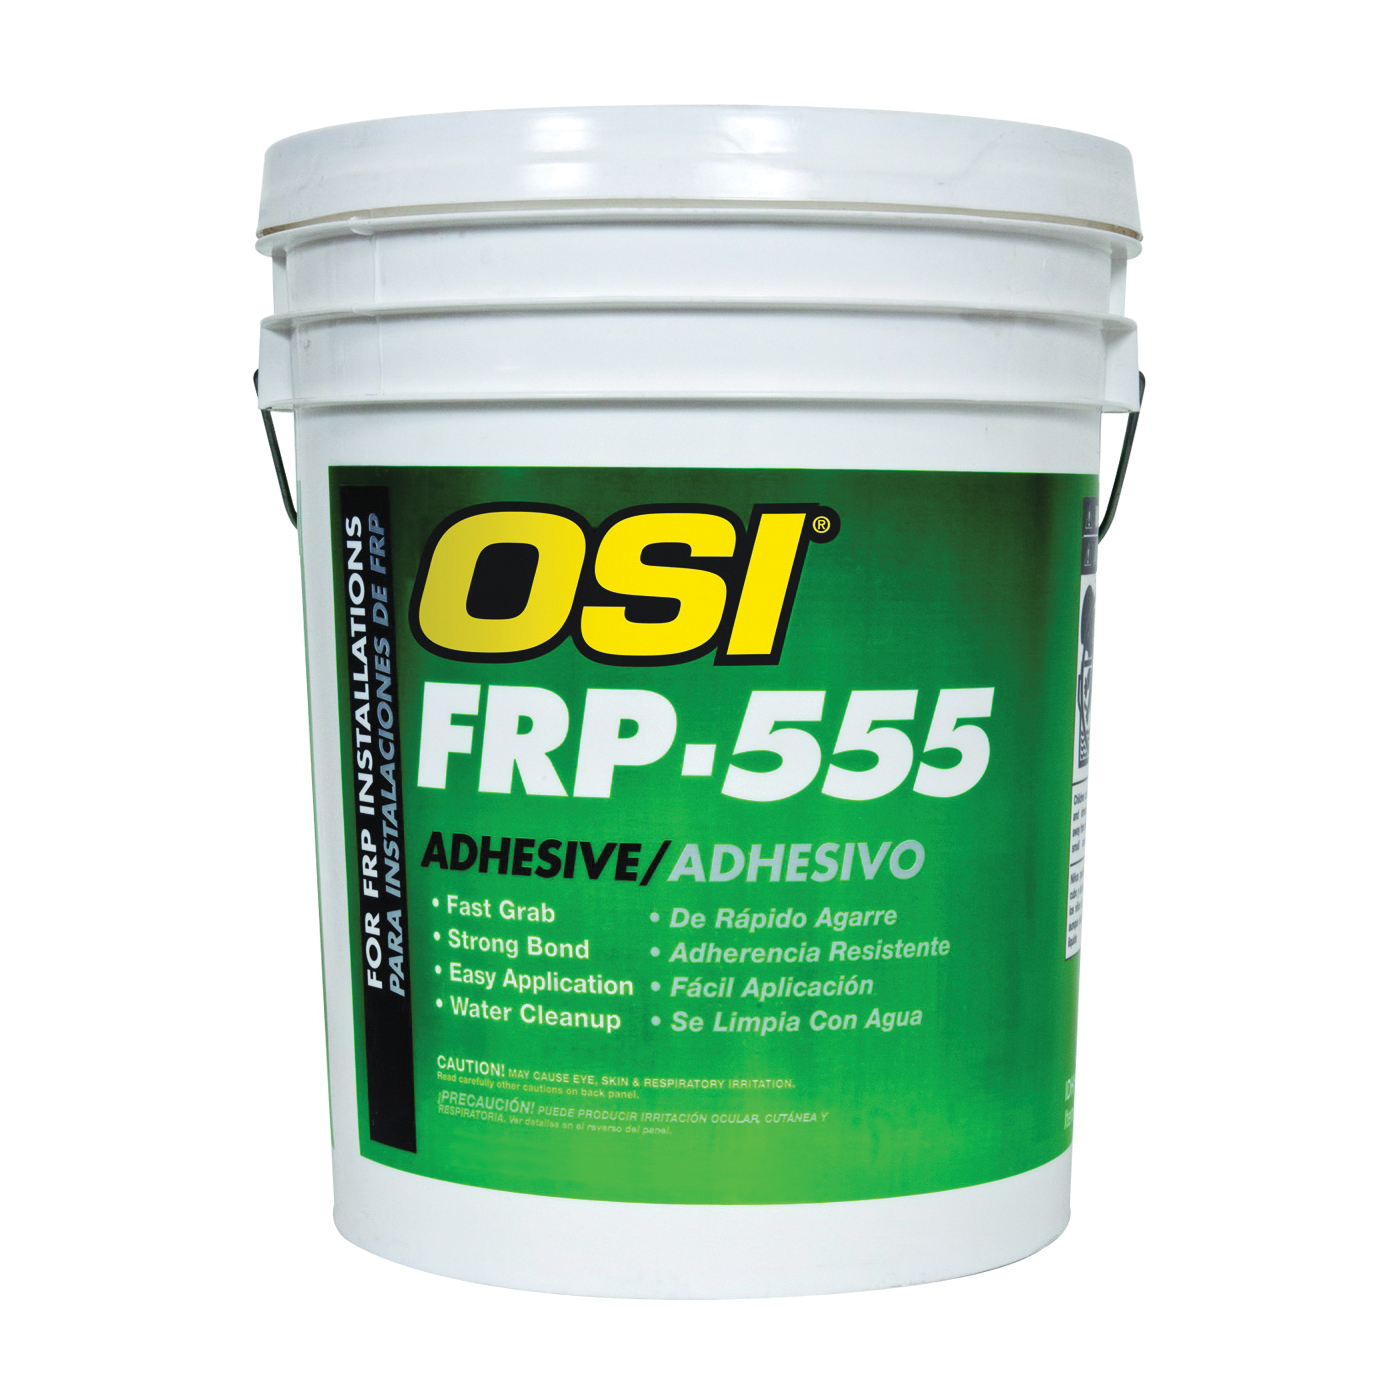 Picture of OSI 827653 Panel Adhesive, Off-White, 1 gal Package, Pail